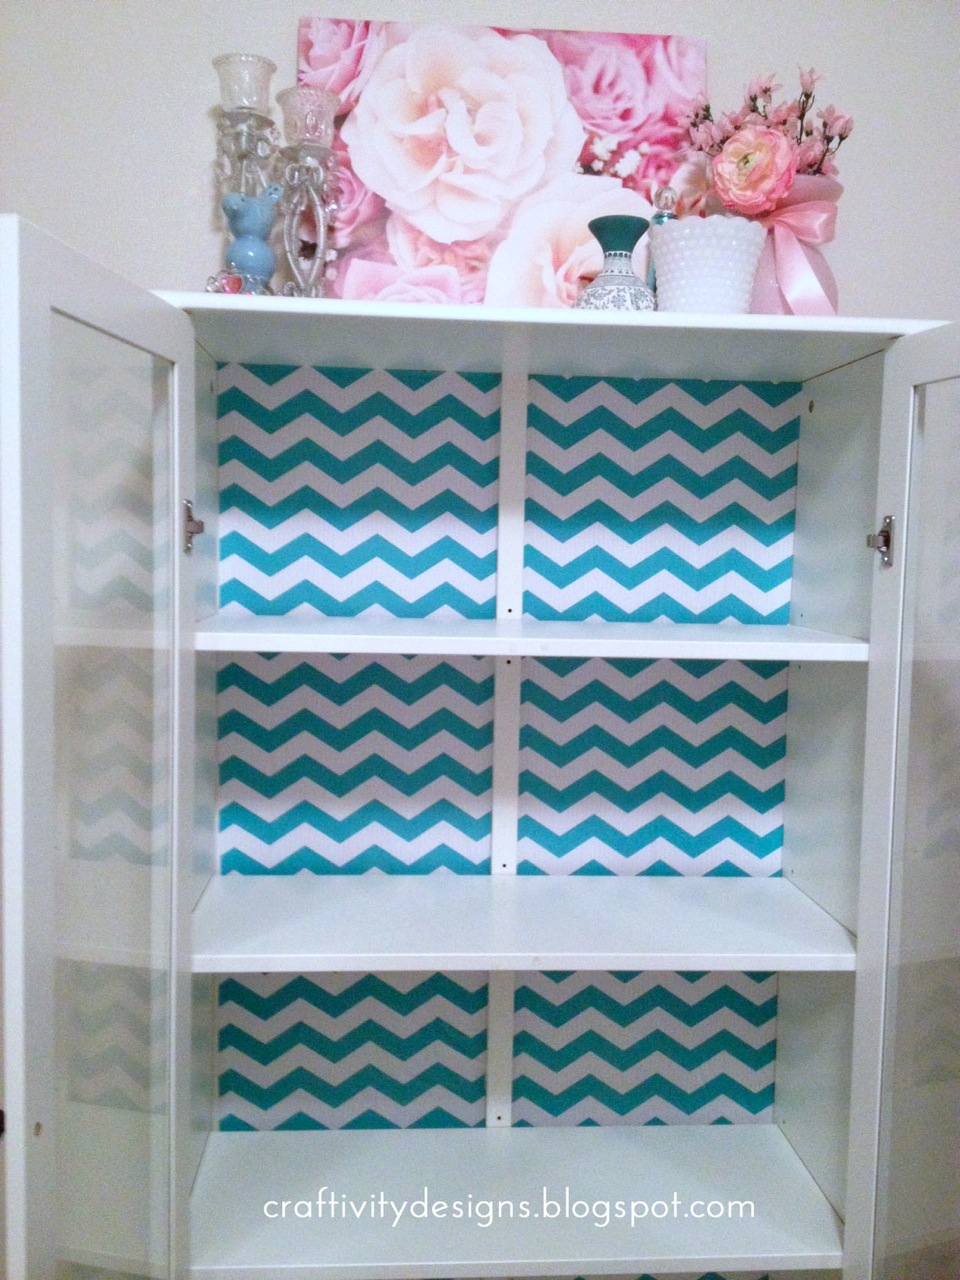 After finishing with the contact paper, I began my favorite partfilling  the shelves! I love how the chevron paper looks with my floral scarves that  are ...